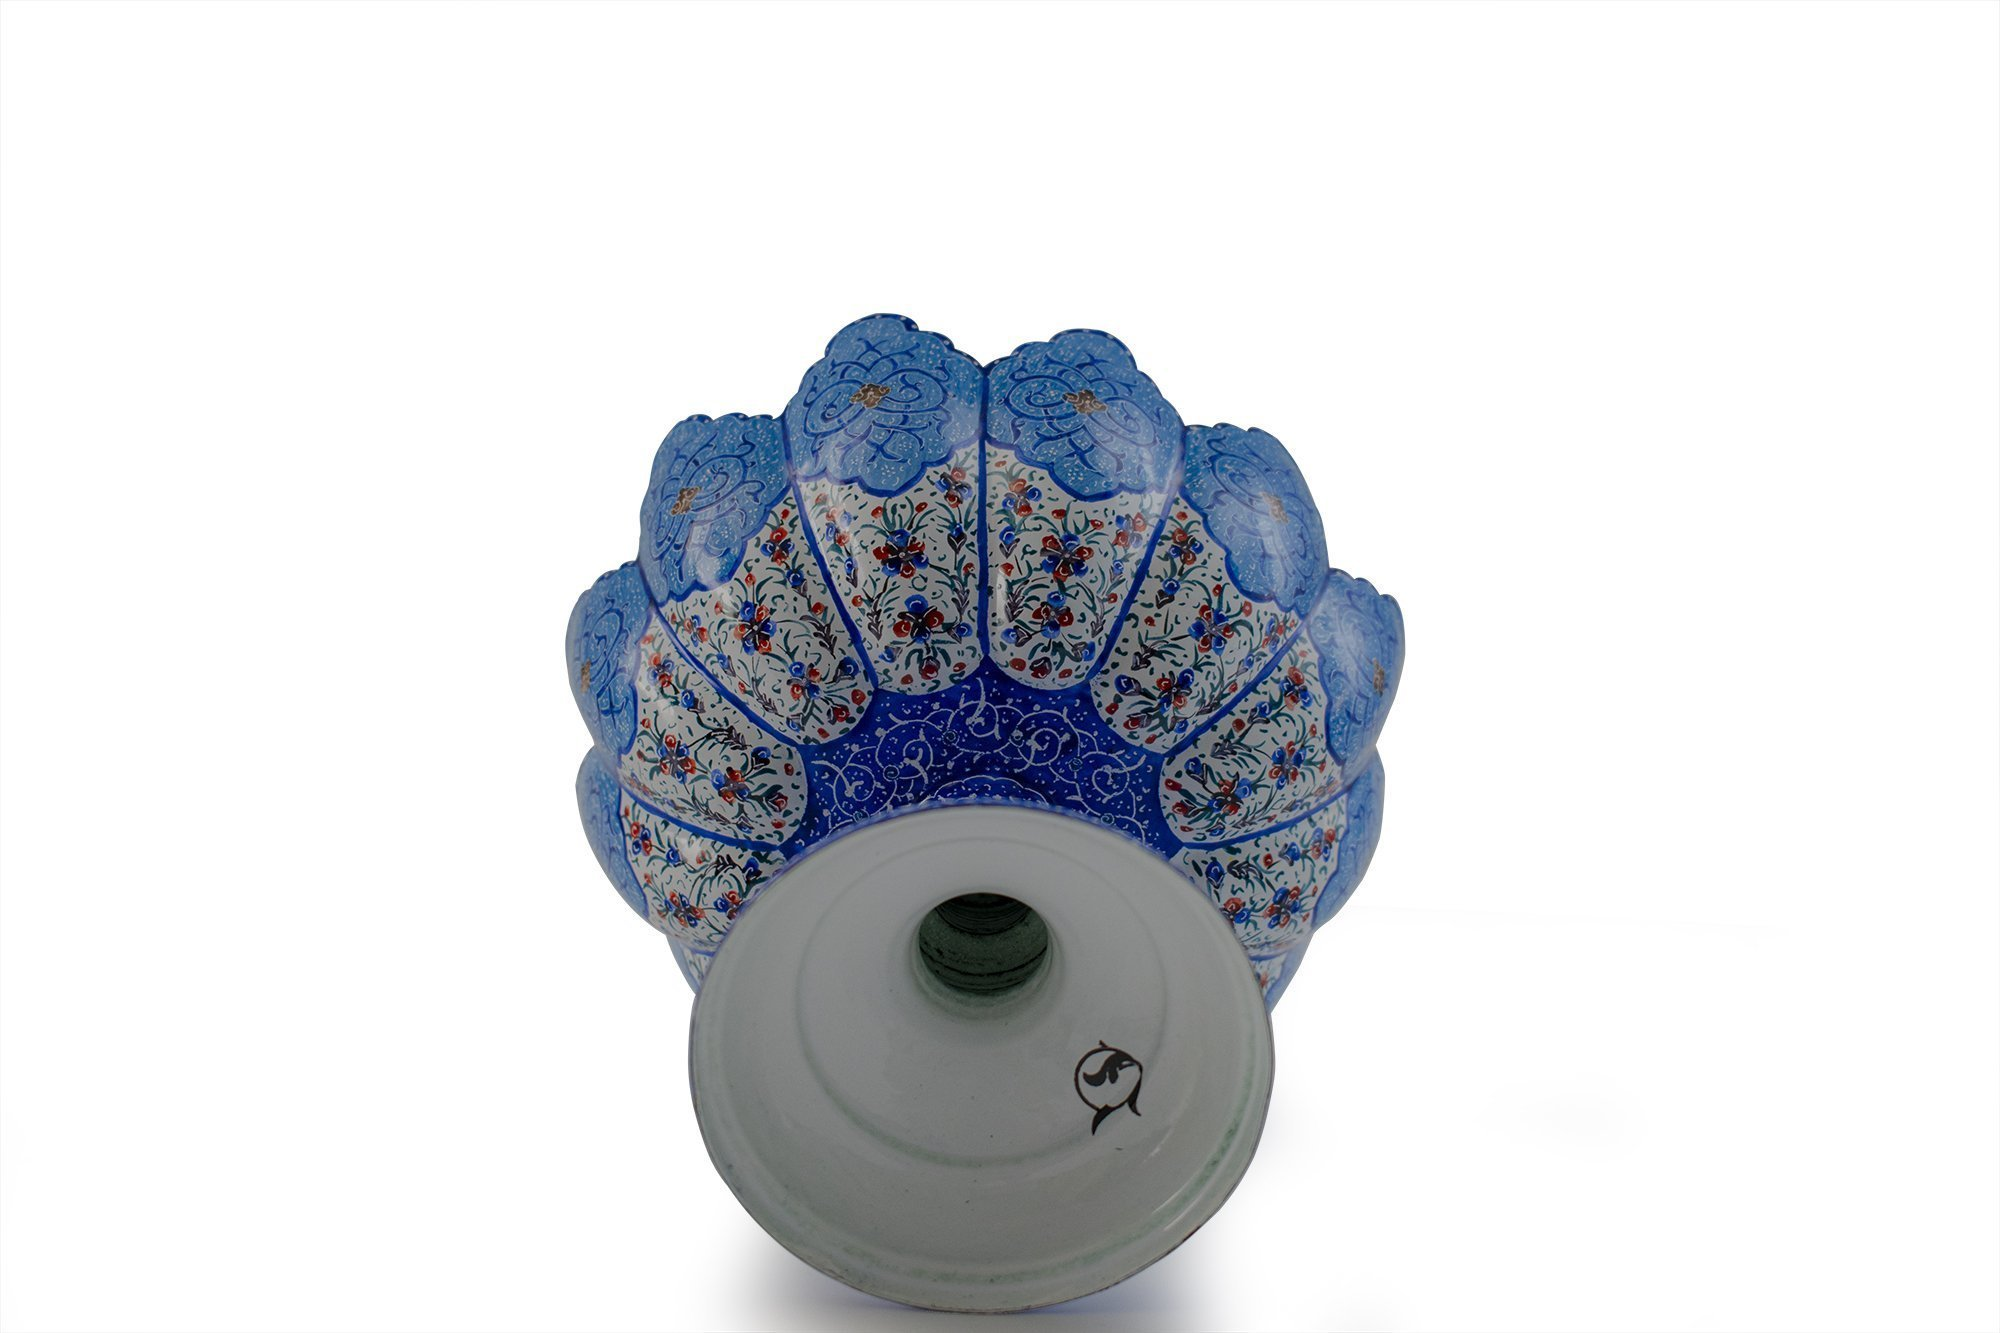 Persian Enamel (Minakari) Decorative Stem Bowl Is Made Of Copper, 14cm Height And It's In Bright Azure Colour. The Artwork Is Decorative With Iconic Persian Floral Pattern